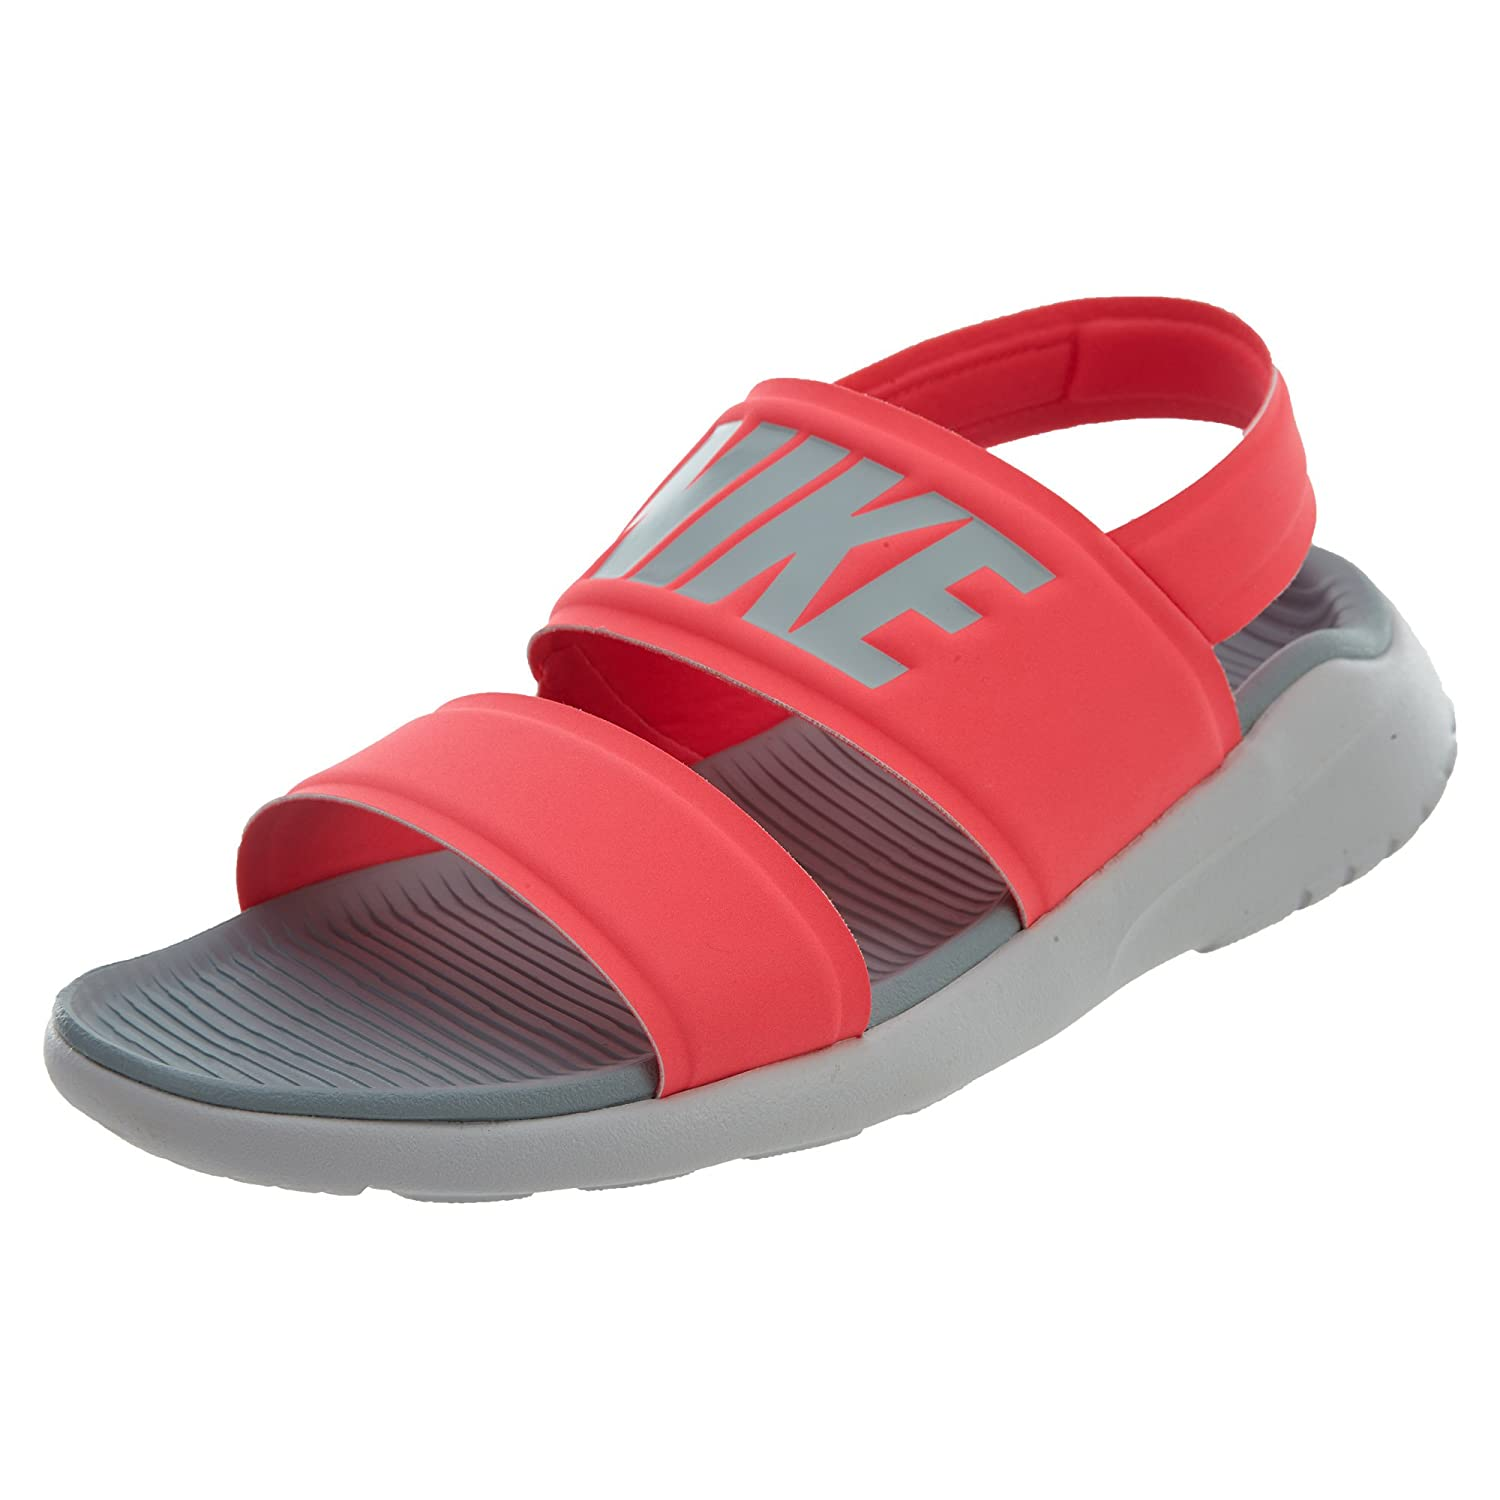 Nike WMNS Tanjun Sandal Mens Fashion-Turnschuhe Fashion-Turnschuhe Fashion-Turnschuhe 882694-601_6 - Solar rot Light Pumice-Pure Platinum e4bb12